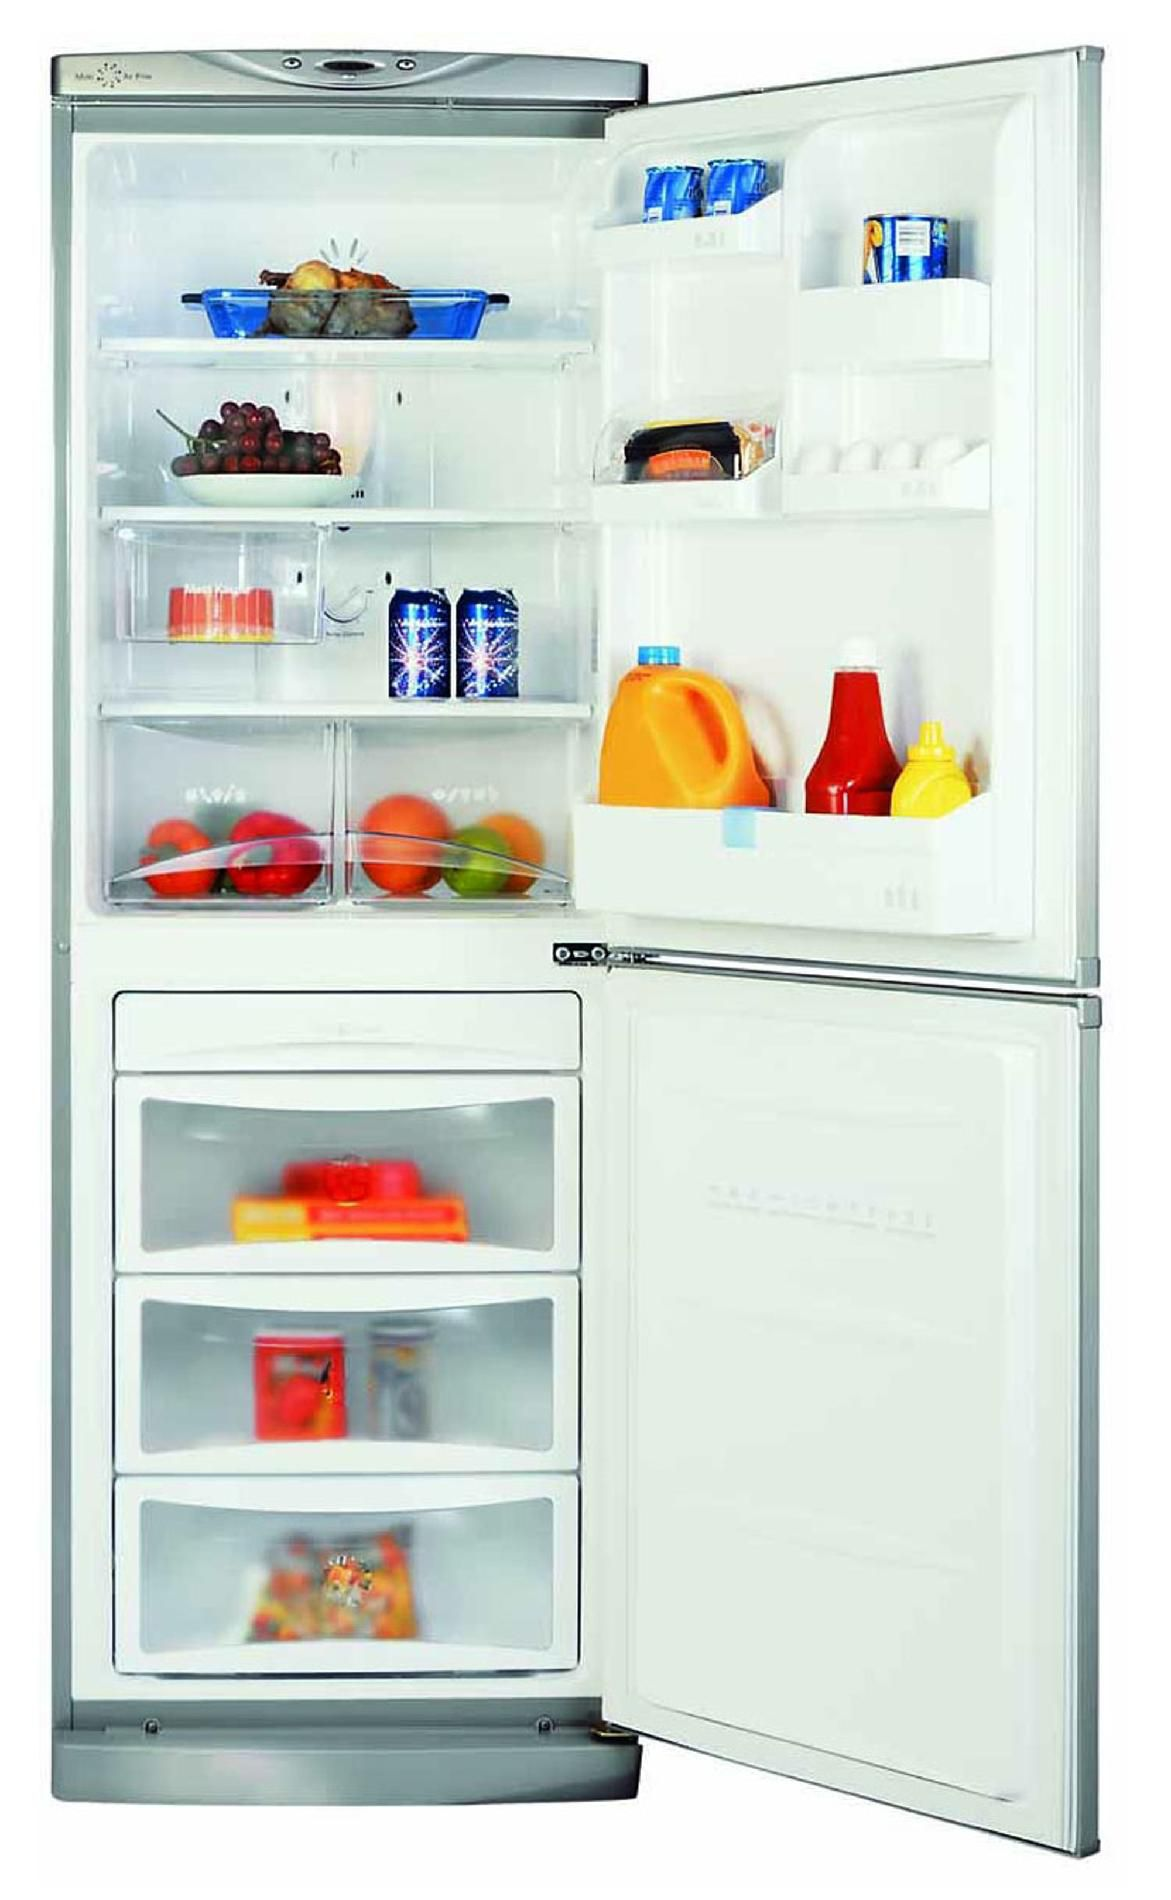 LG 10 cu. ft. Bottom-Freezer Refrigerator, White